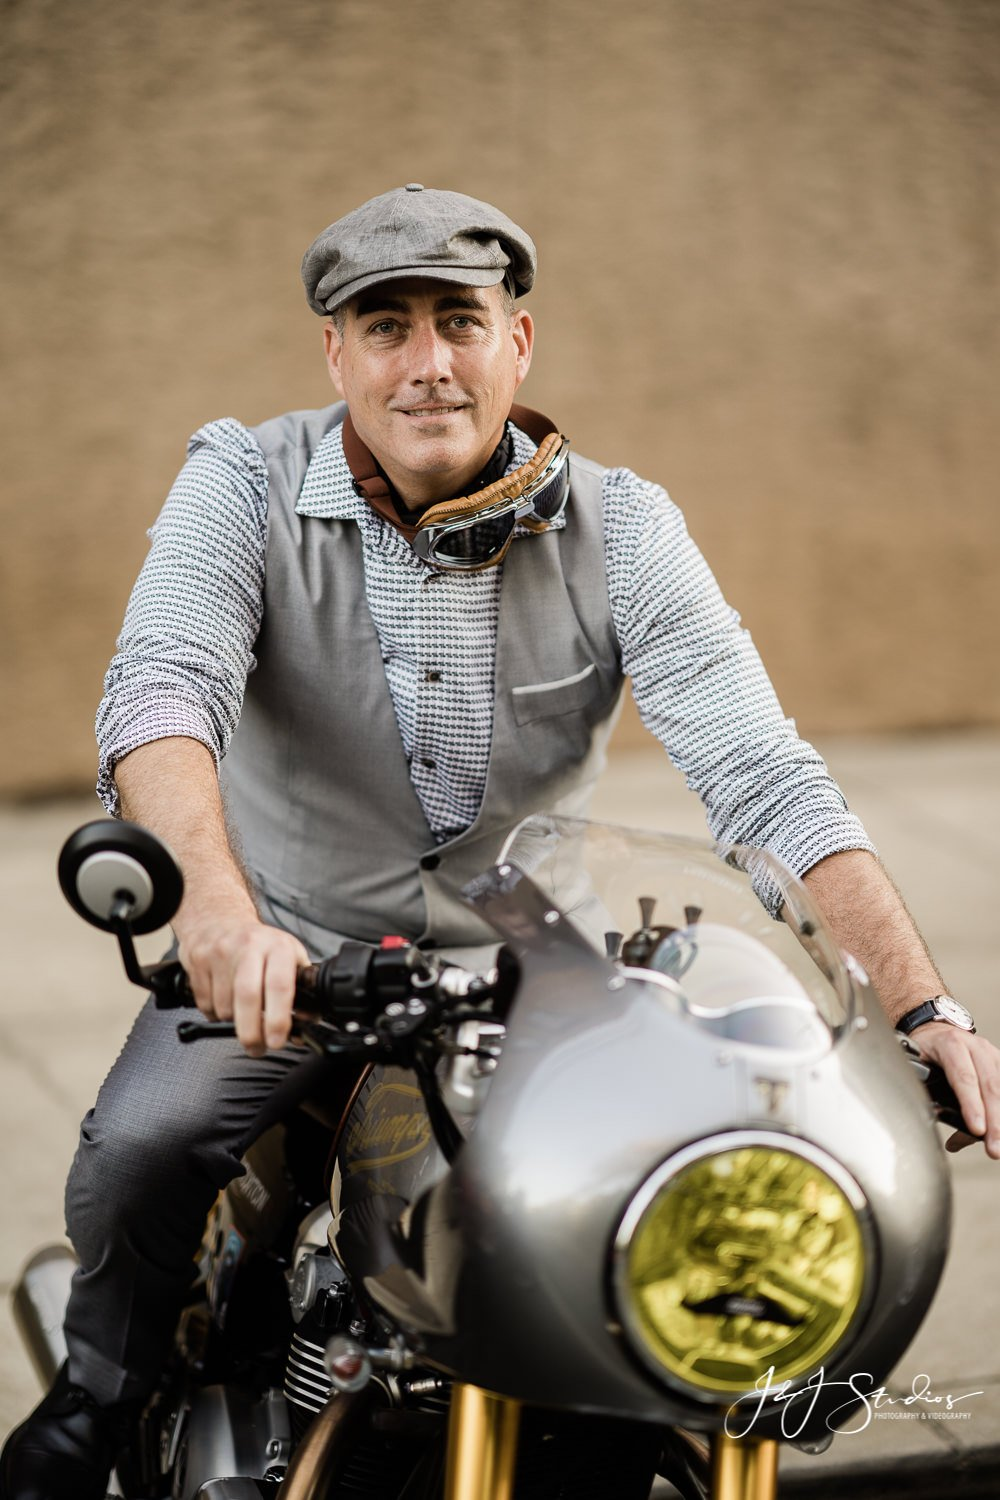 vested man with hat on motorcycle